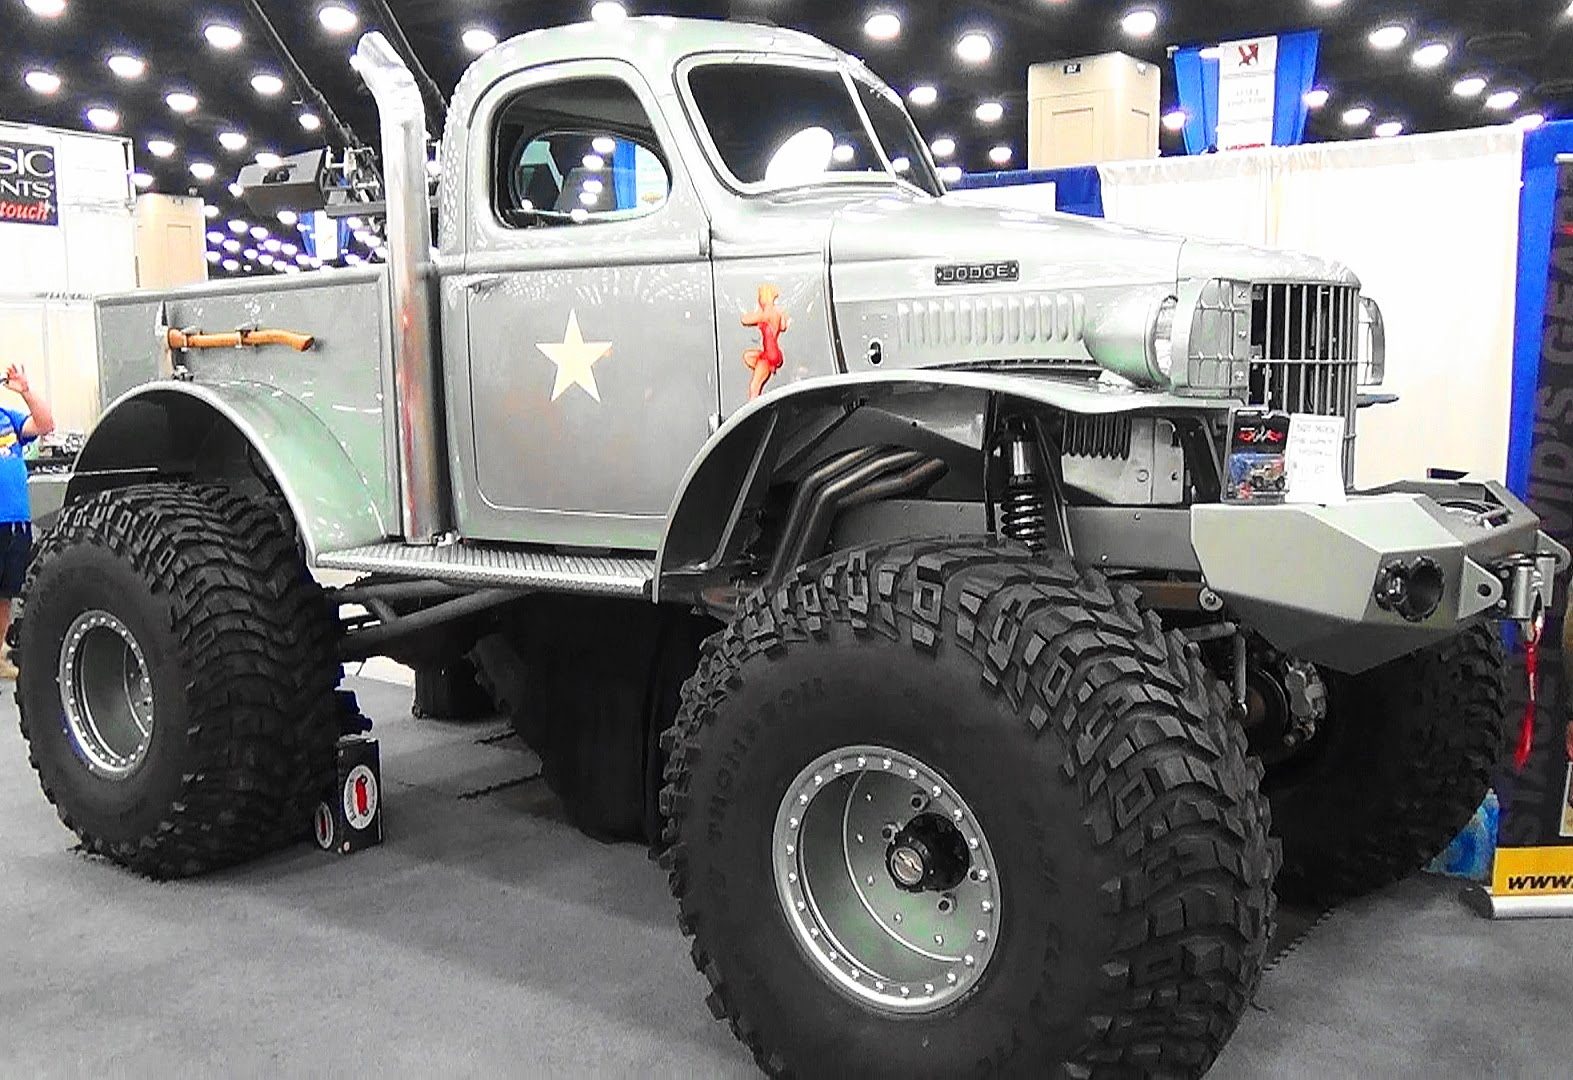 This 1941 Military 1/2 ton Dodge PickUp Truck Is A Perfect